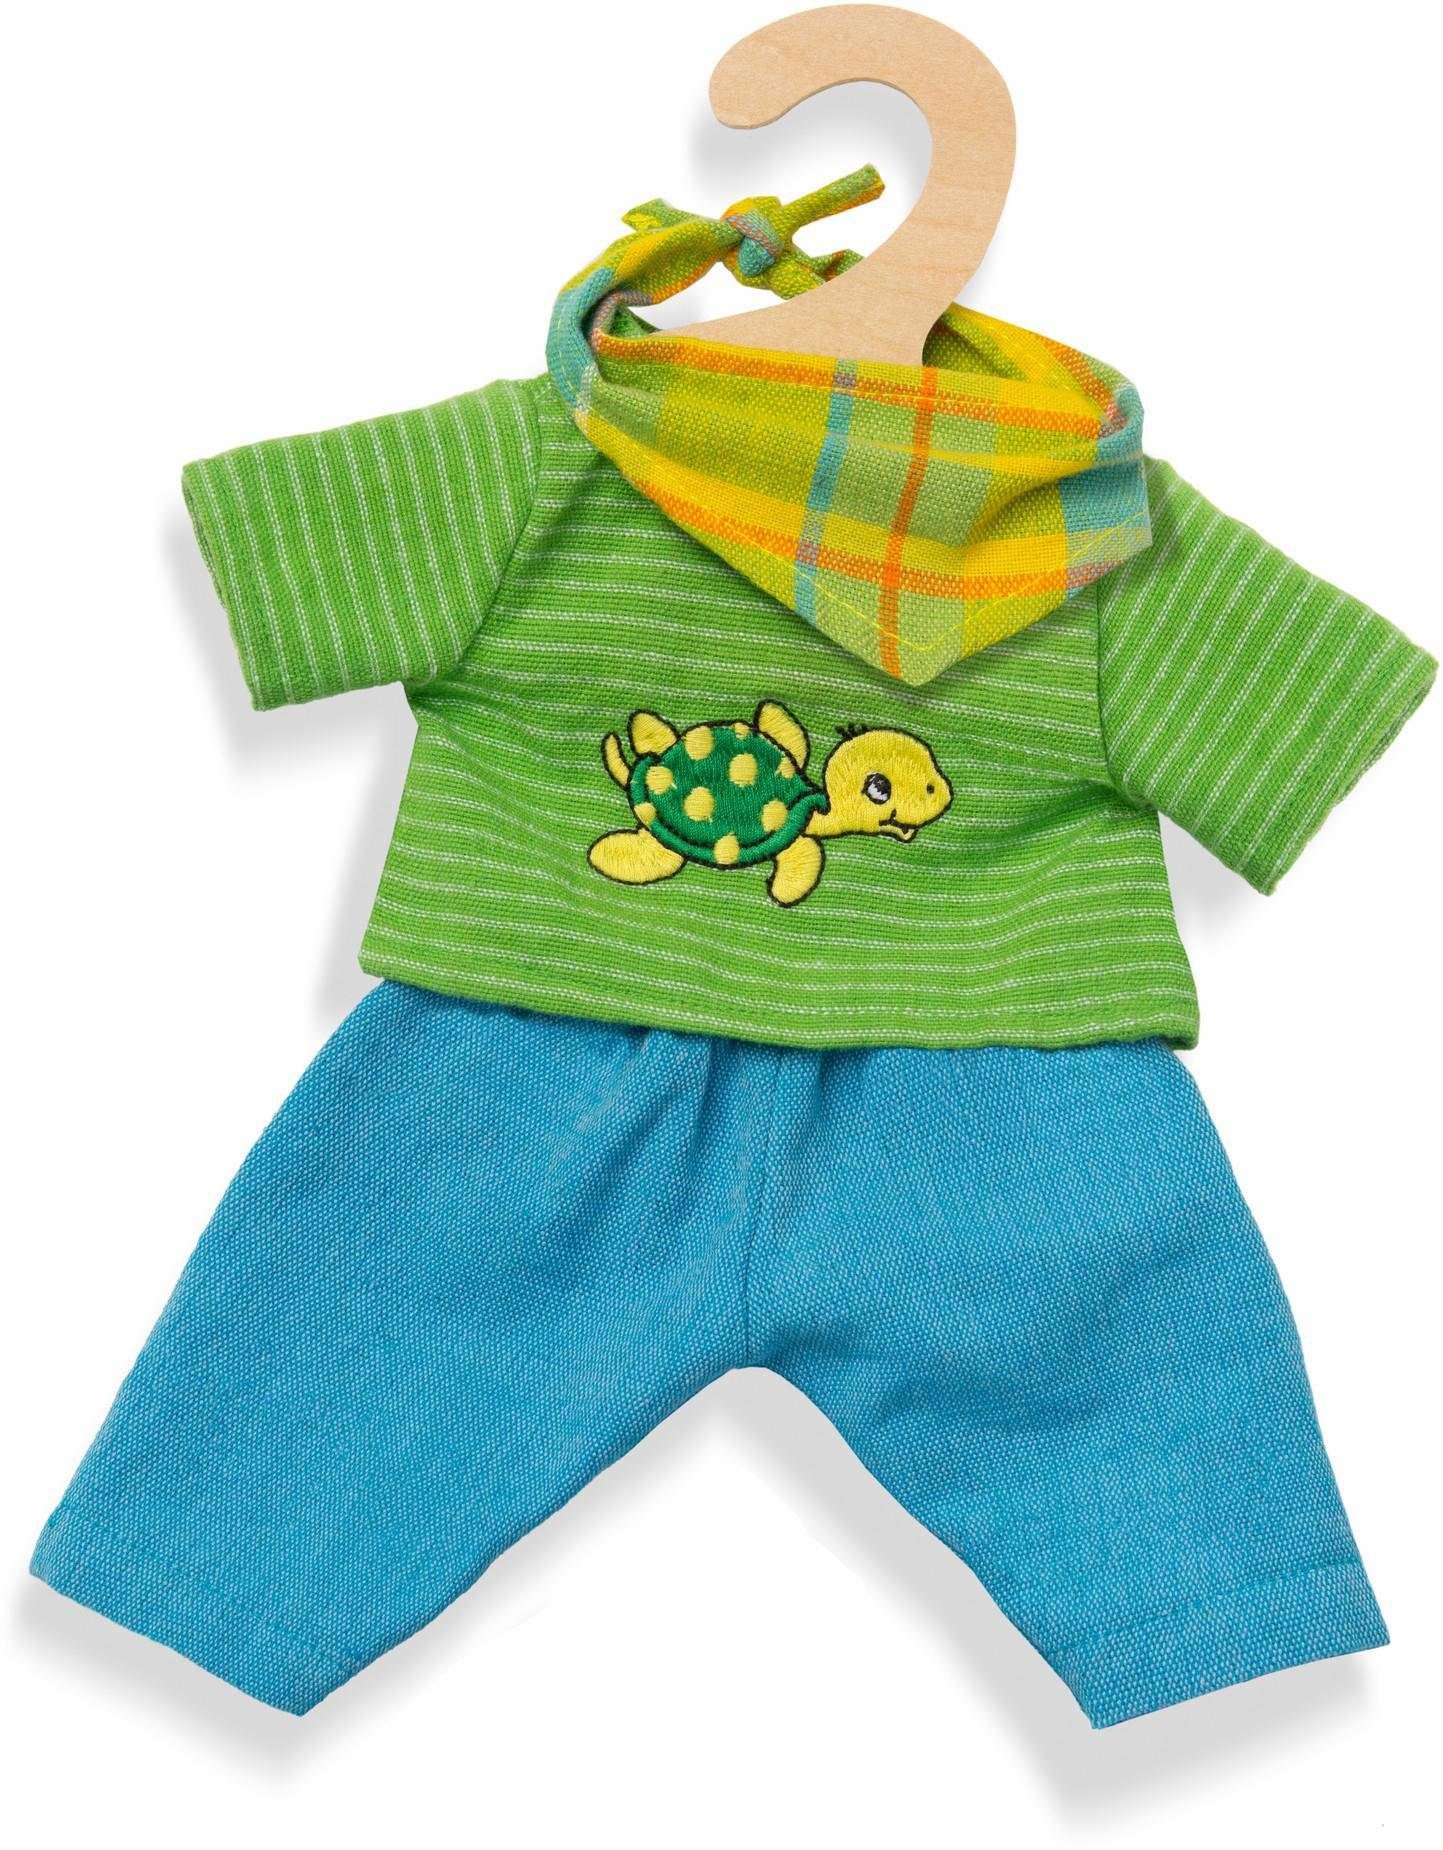 Heless® Puppenkleidung, »Outfit Max, Gr. 35-45 cm«